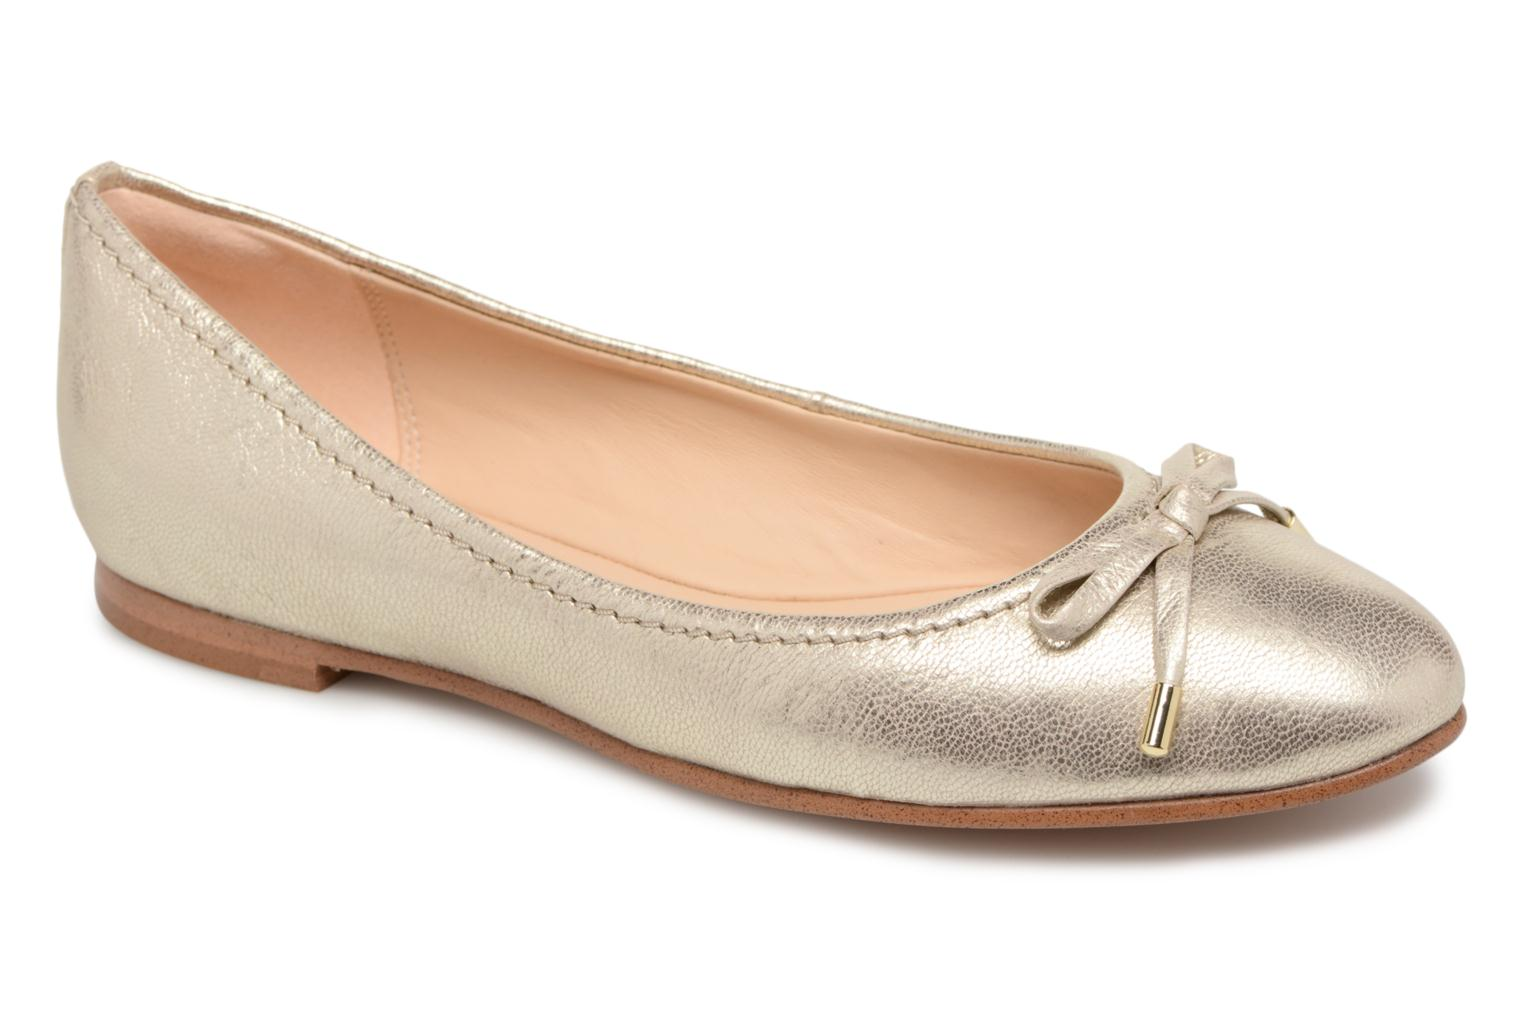 Mujer Clarks Grace Lily Bailarinas Oro Y Bronce